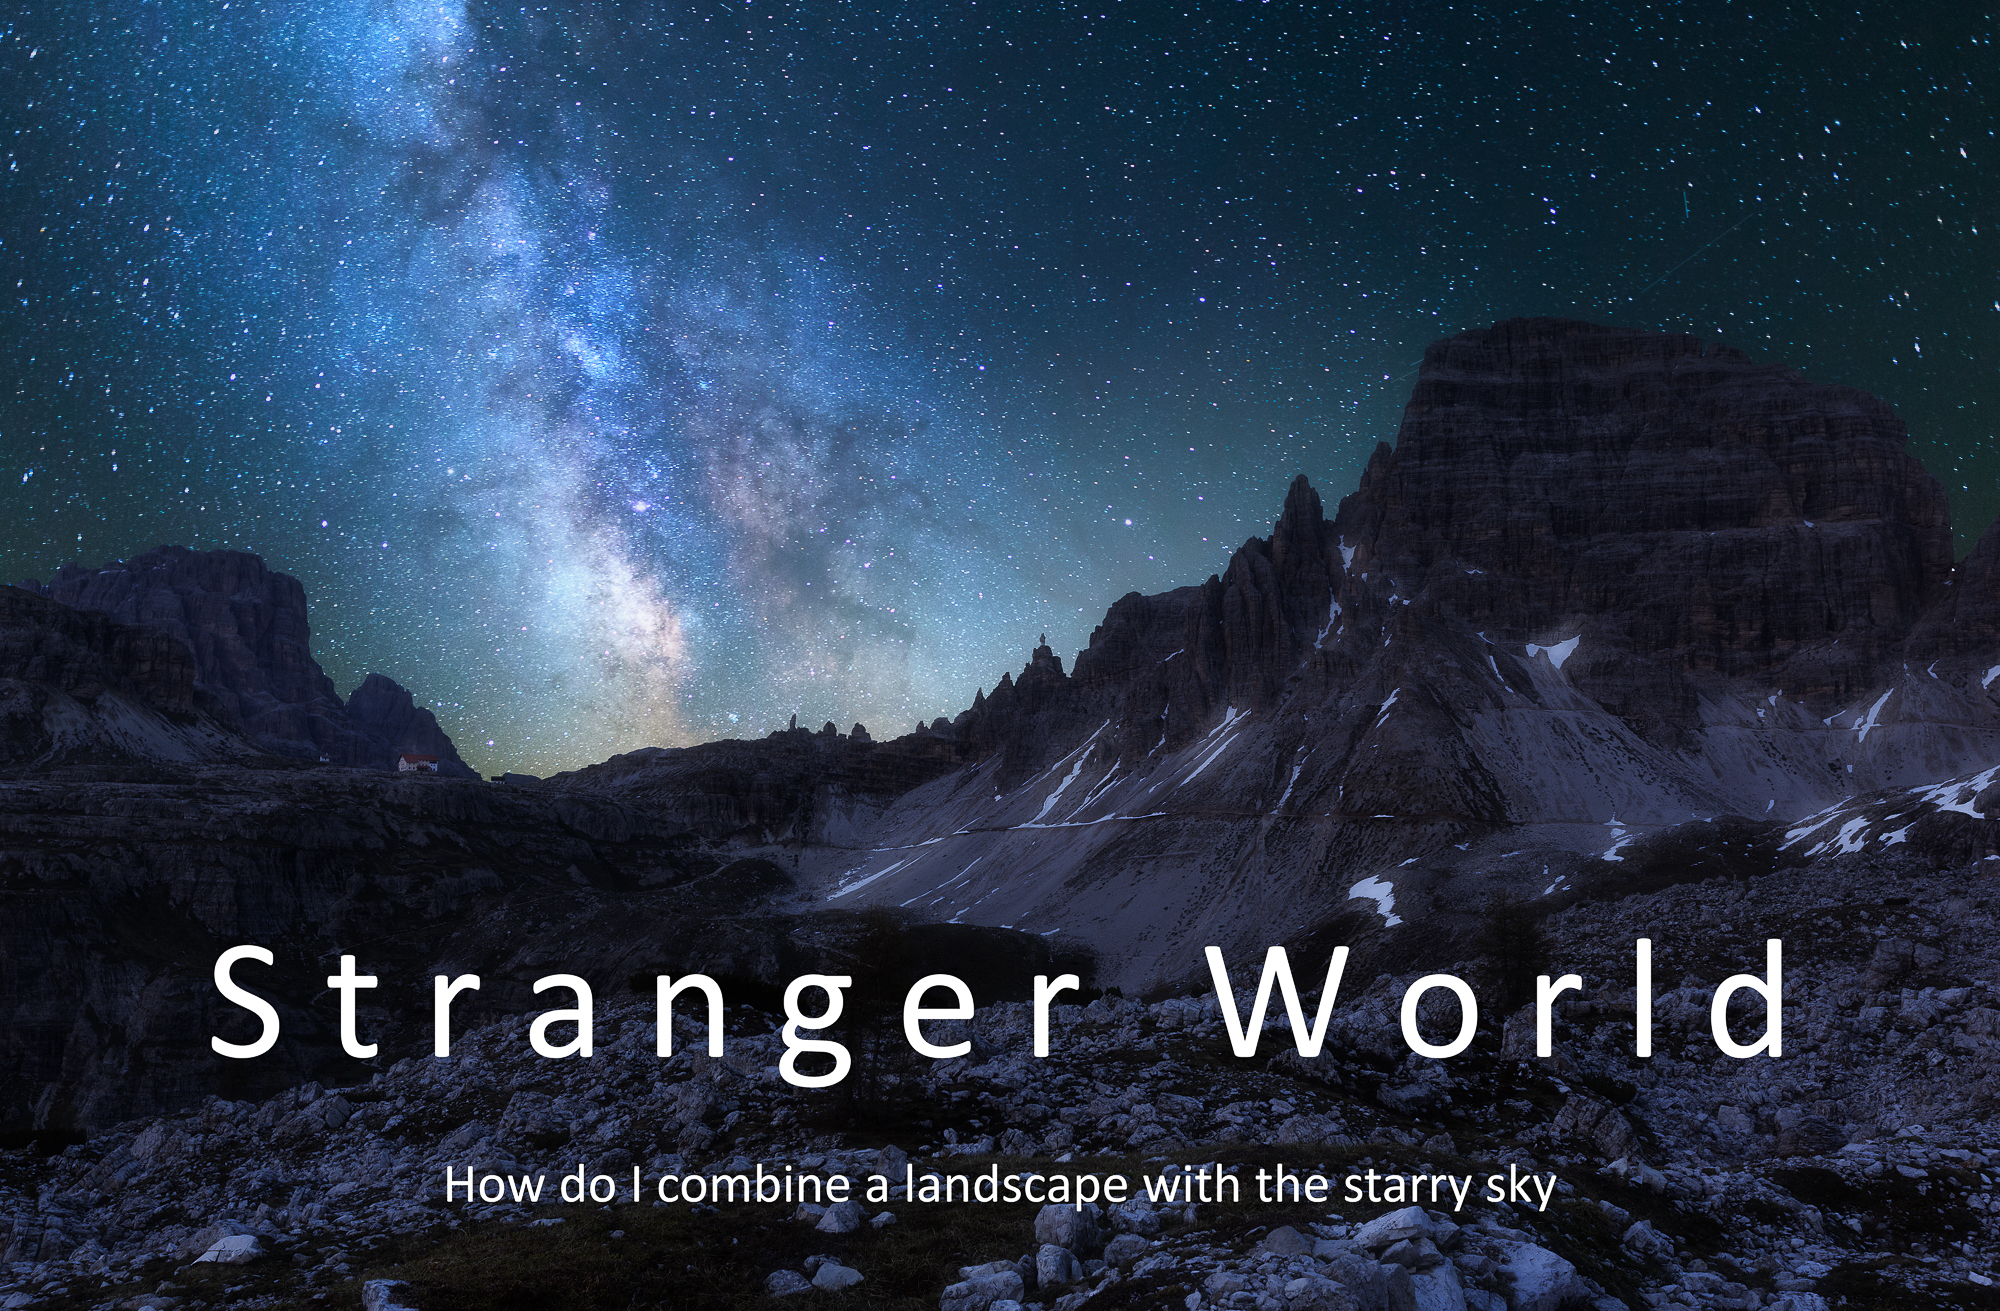 2 Tutorial-Timeblending-Milkyway-Astrophotography-Instruction-Photoshop-Stranger World-English